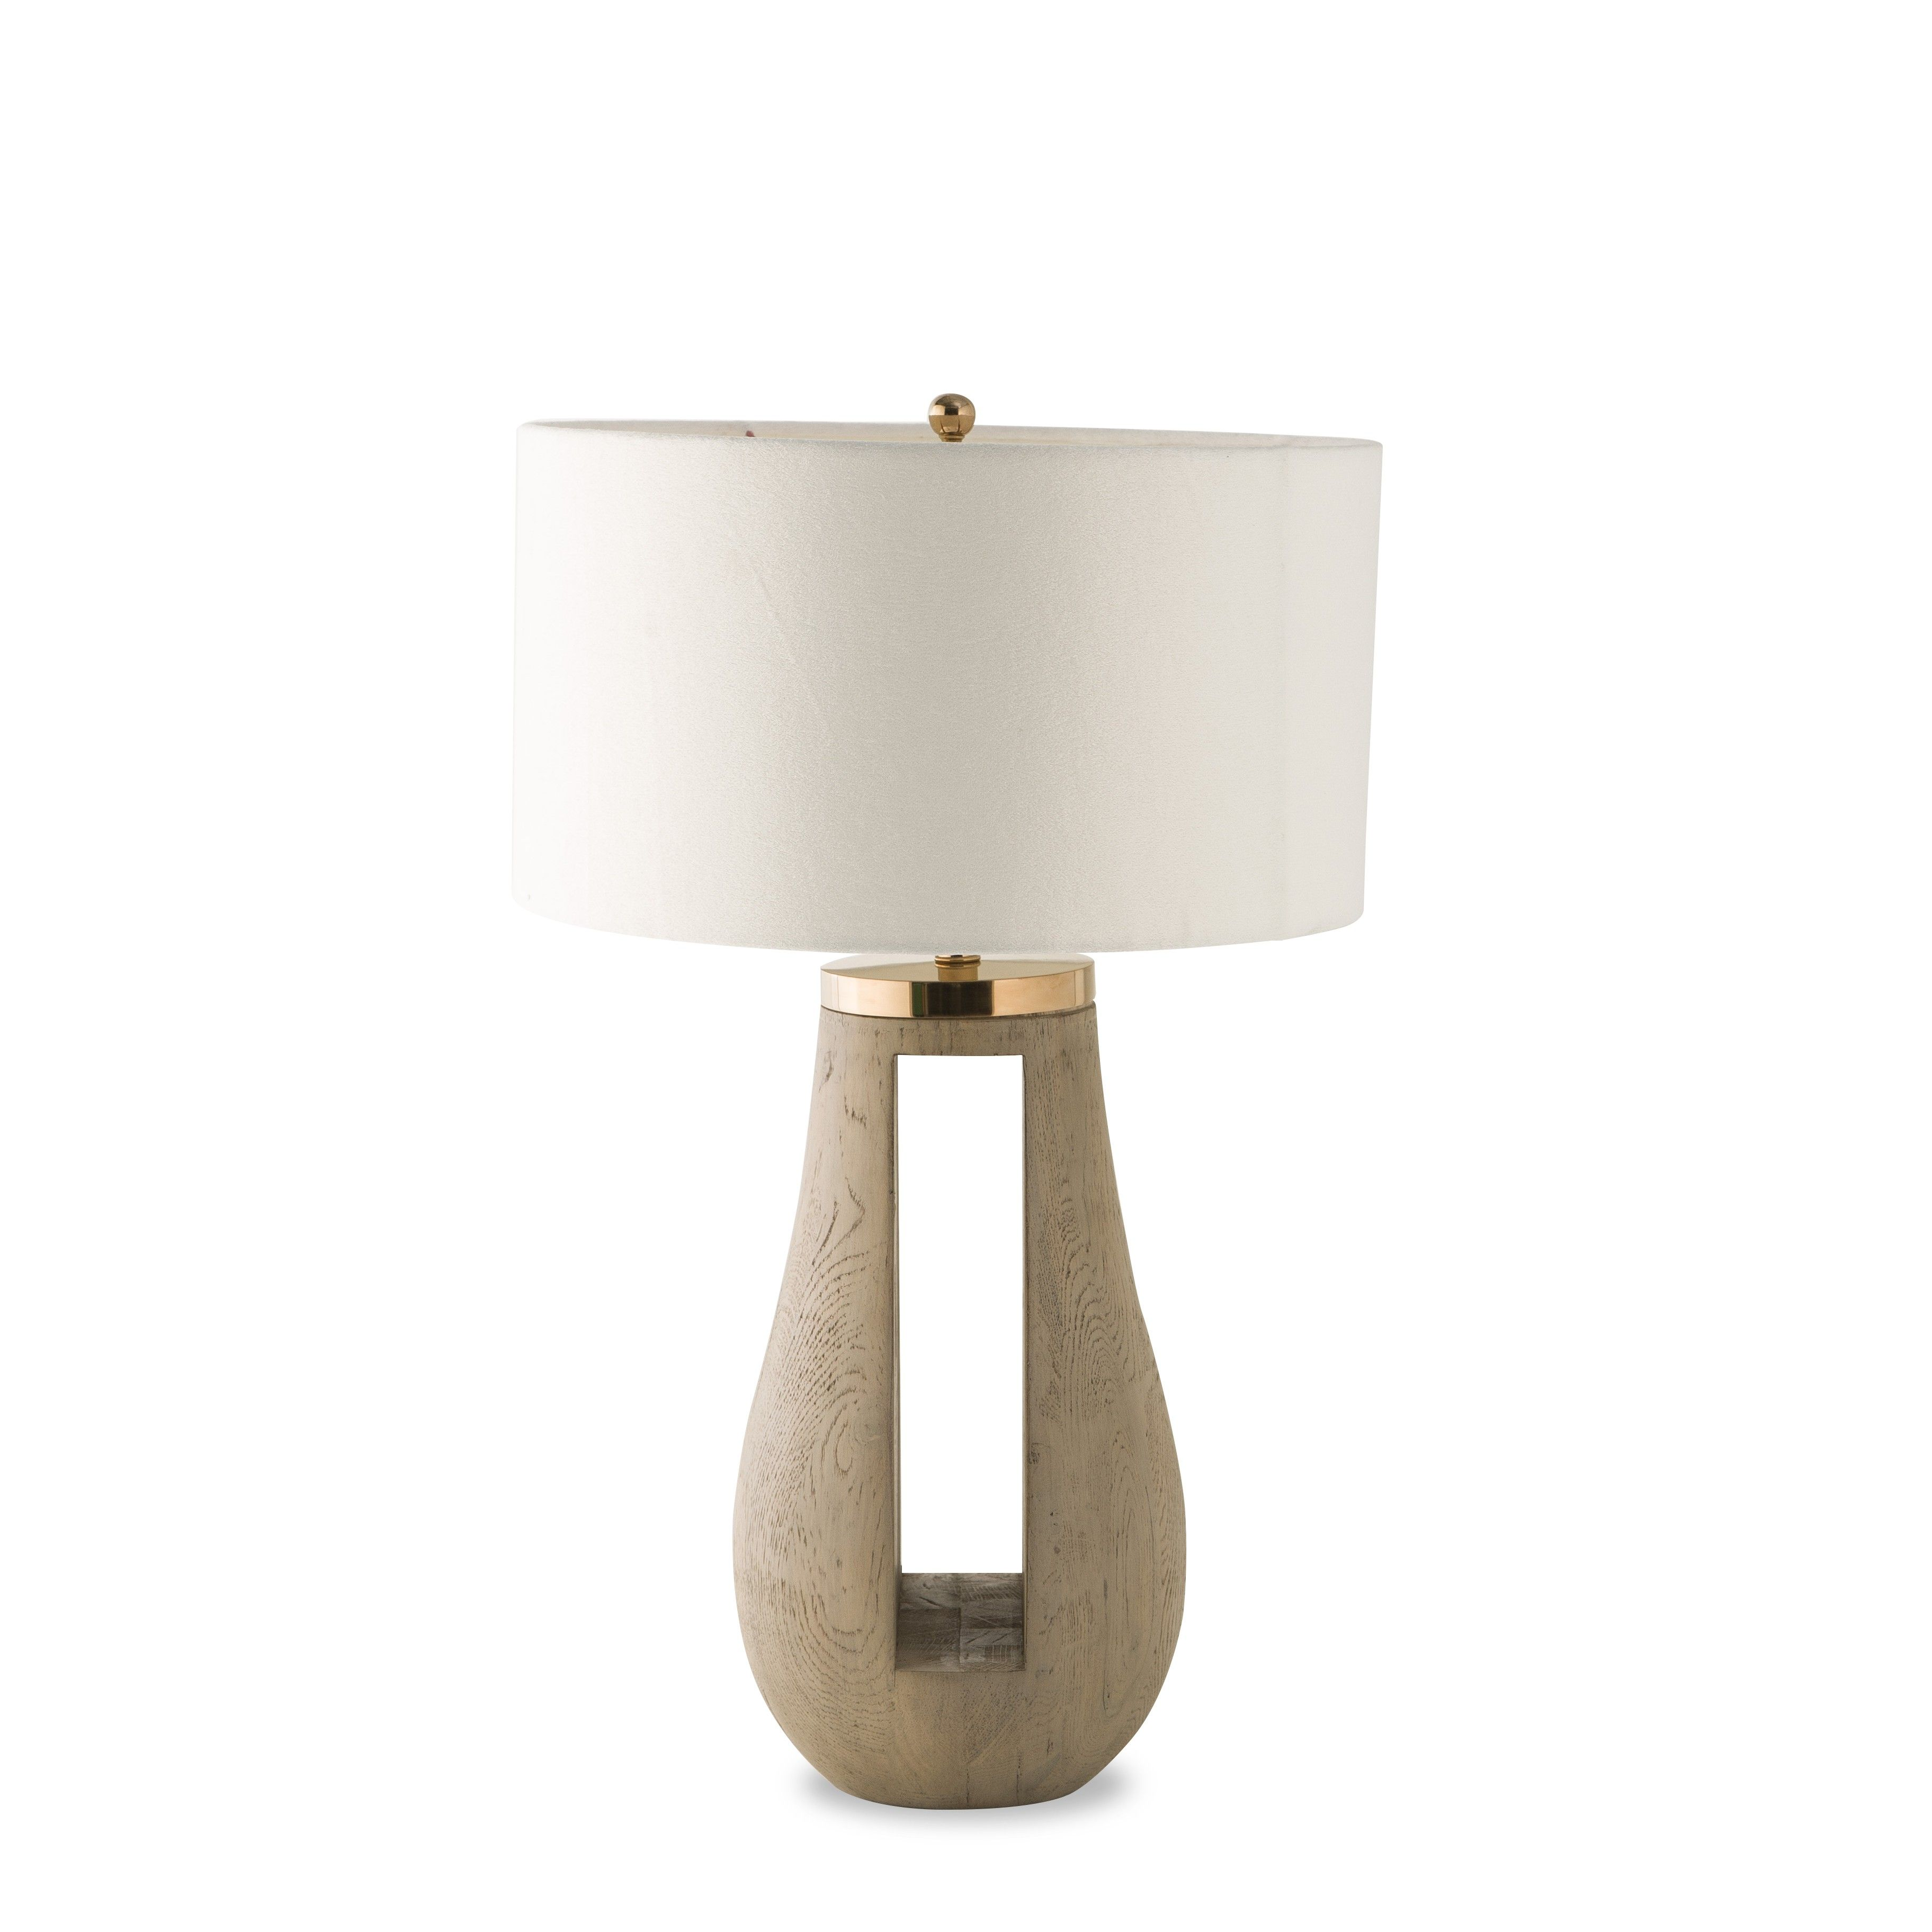 lulu kelly hoppen gray table lamp marina gold accent lamps our features the unique combination rustic wood and glamorous with modern cutout down middle elegant piece for living